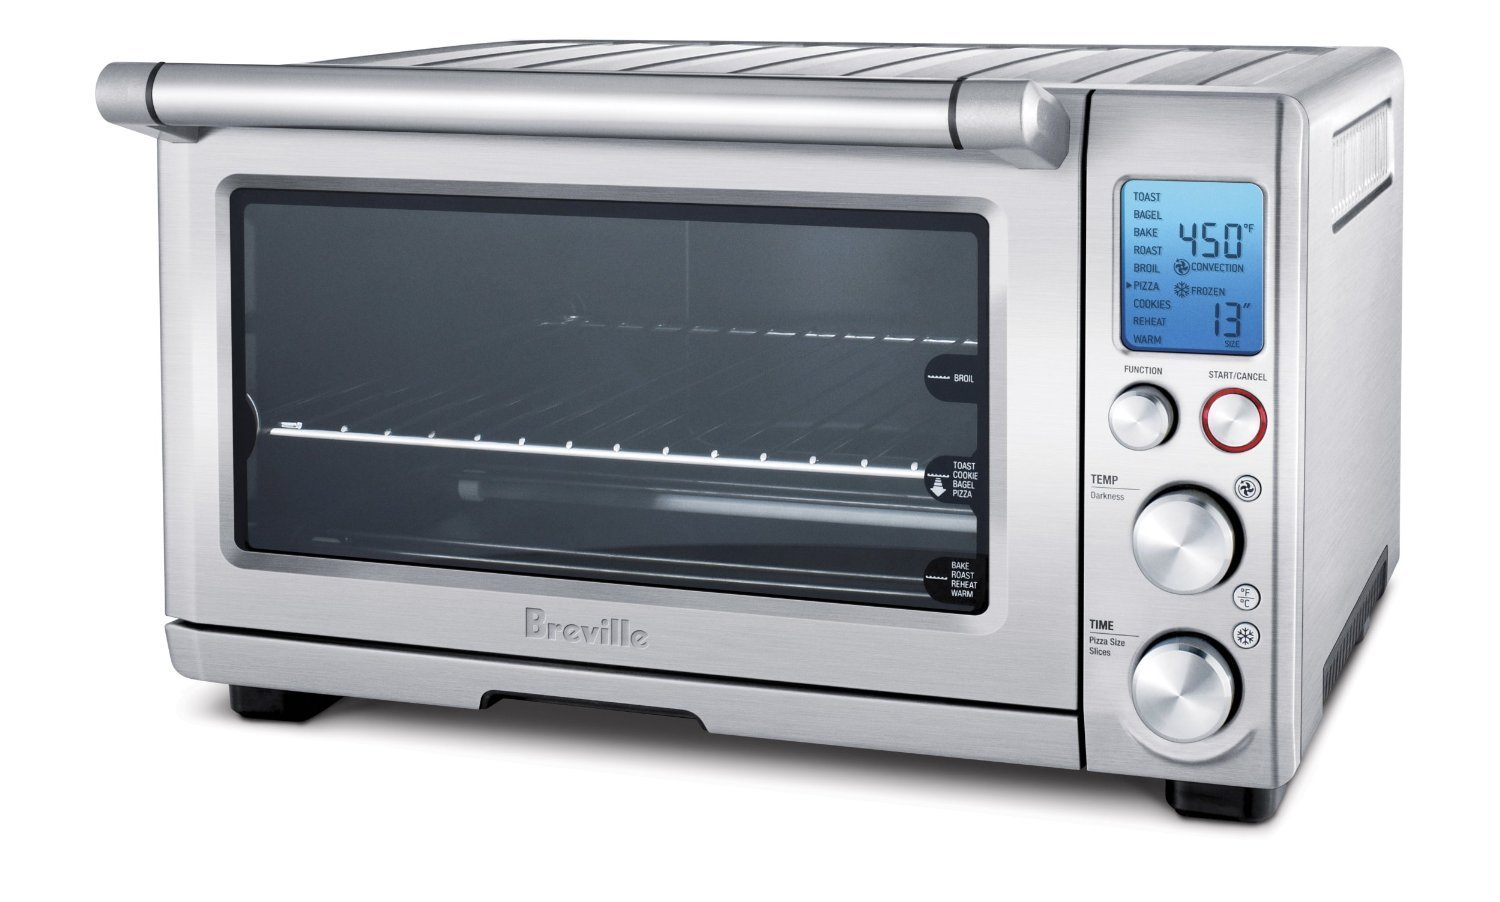 Top 10 Countertop Convection Oven Reviews —  Choose the Best One for Yourself in 2020